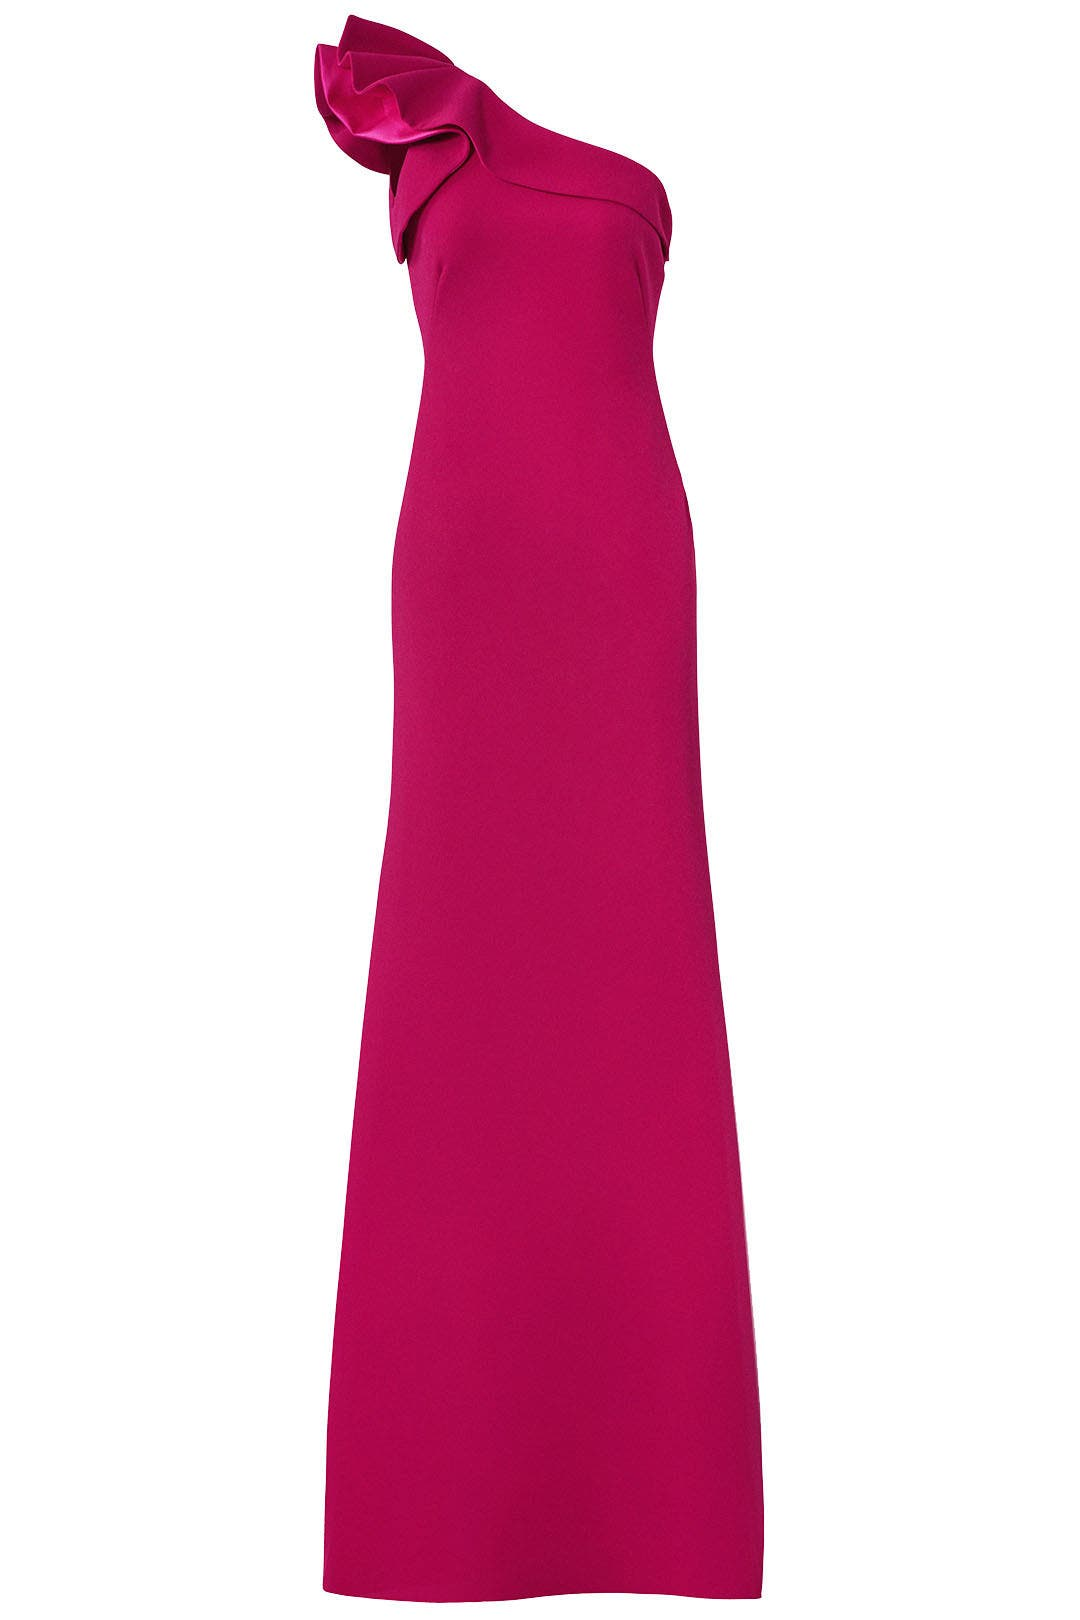 Fuchsia Ruffle Gown by Carmen Marc Valvo for $90 - $110 | Rent the ...